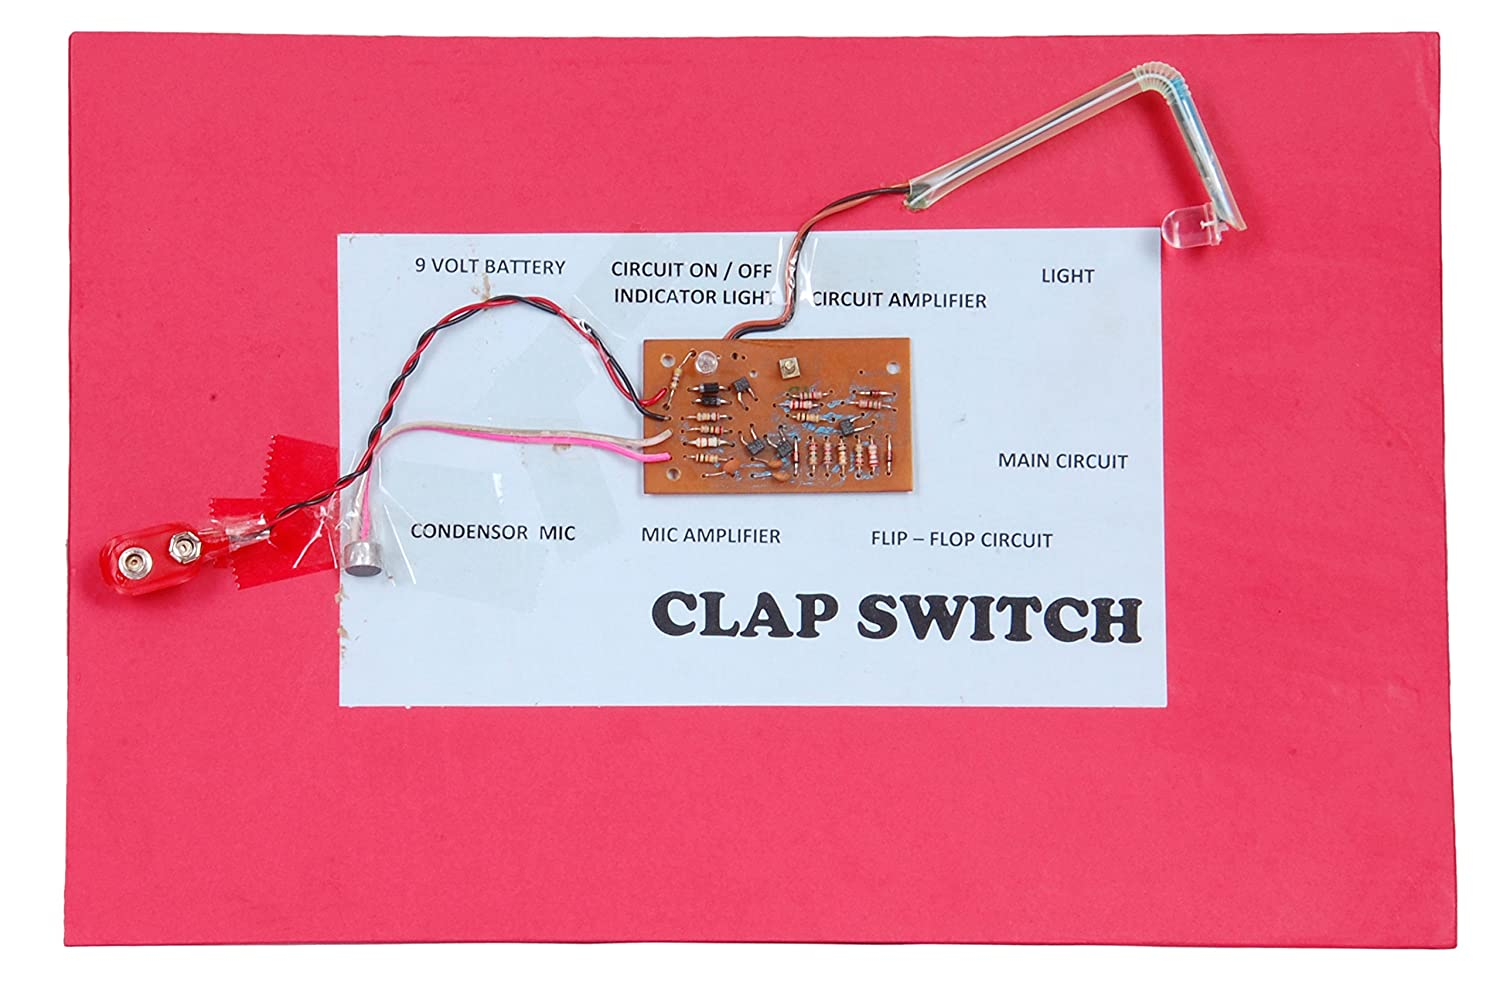 Buy Clap Switch Ready For Demonstration And Understanding Circuit Kit Online At Low Prices In India